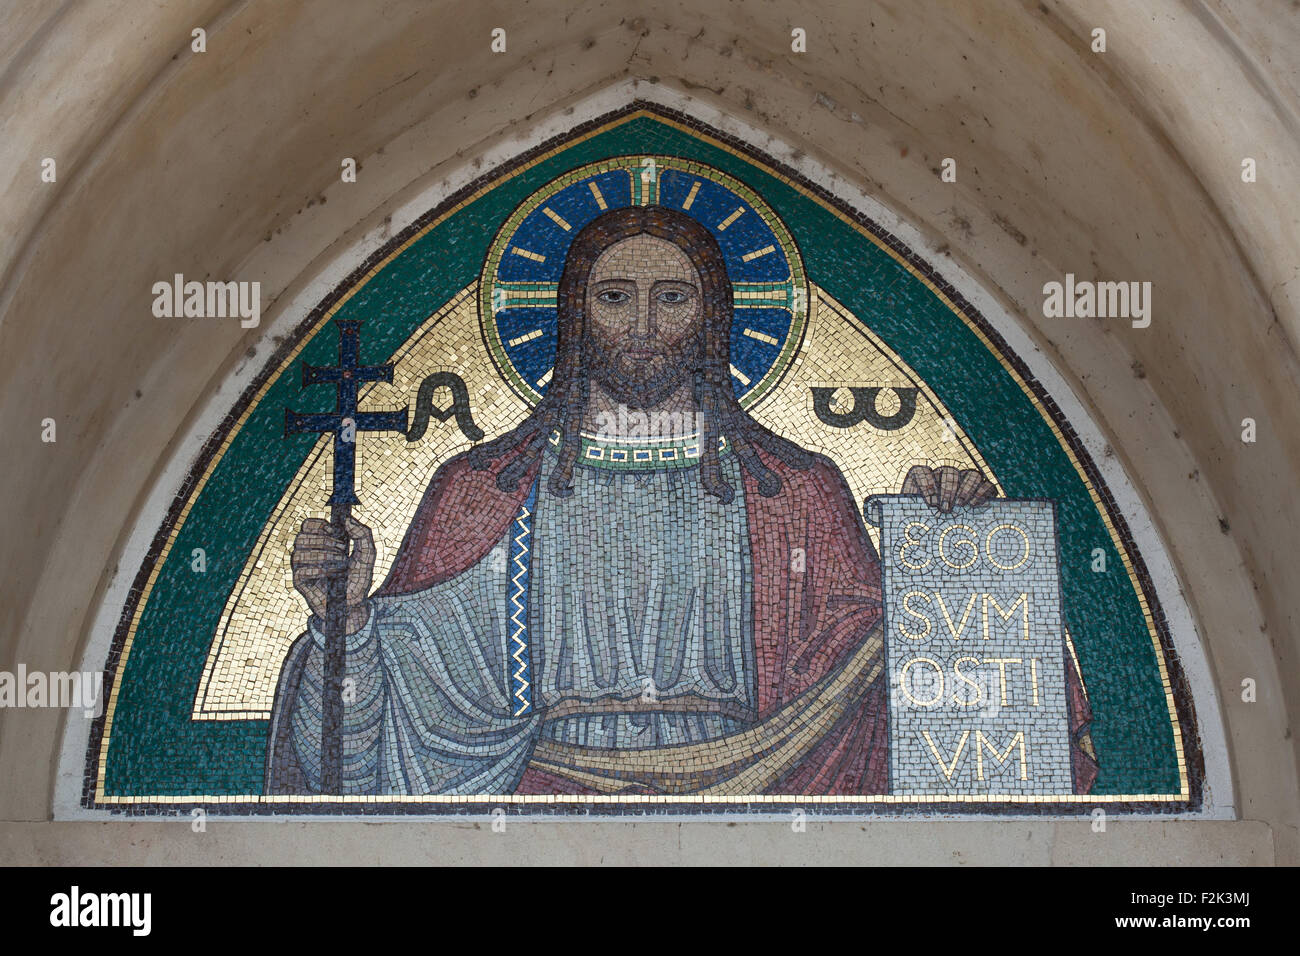 Jesus Christ. Mosaic by the Beuron Art School from the 1910s over the main entrance to the Church of Blessed Virgin Mary and the Slavic Saints of the Emmaus Monastery (Na Slovanech) in Prague, Czech Republic. Stock Photo